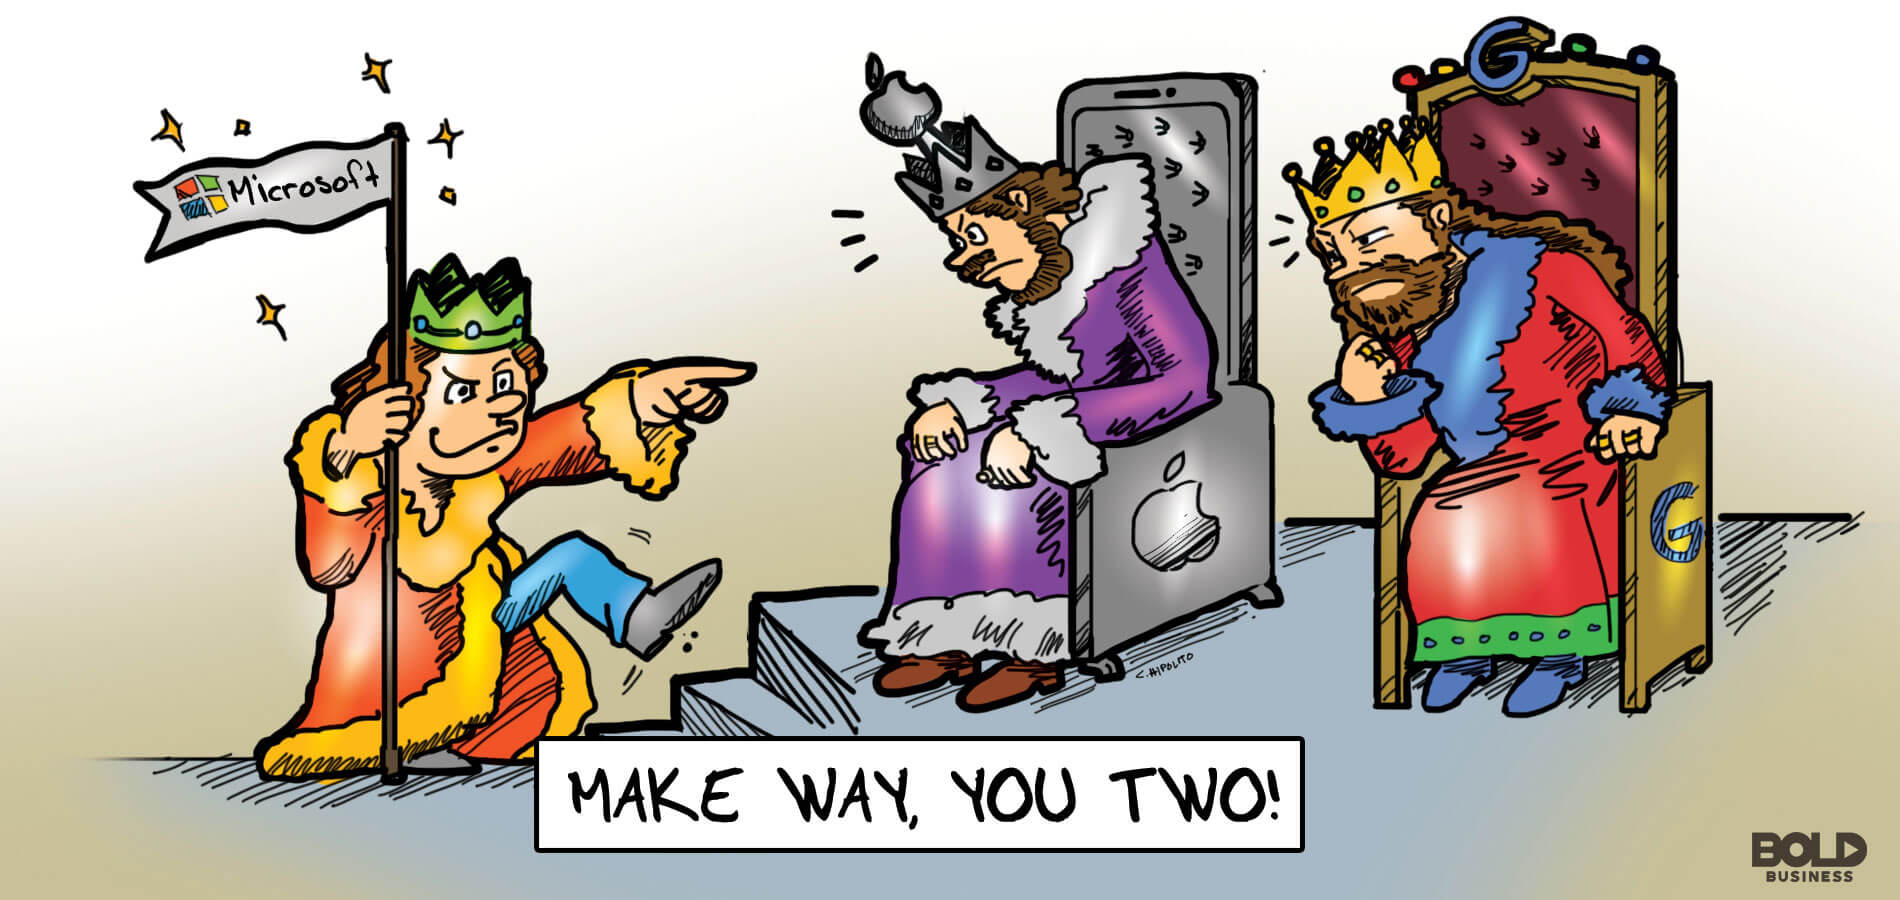 cartoon of a Microsoft King shooing away Apple King and Google King in the battle of Microsoft revenues